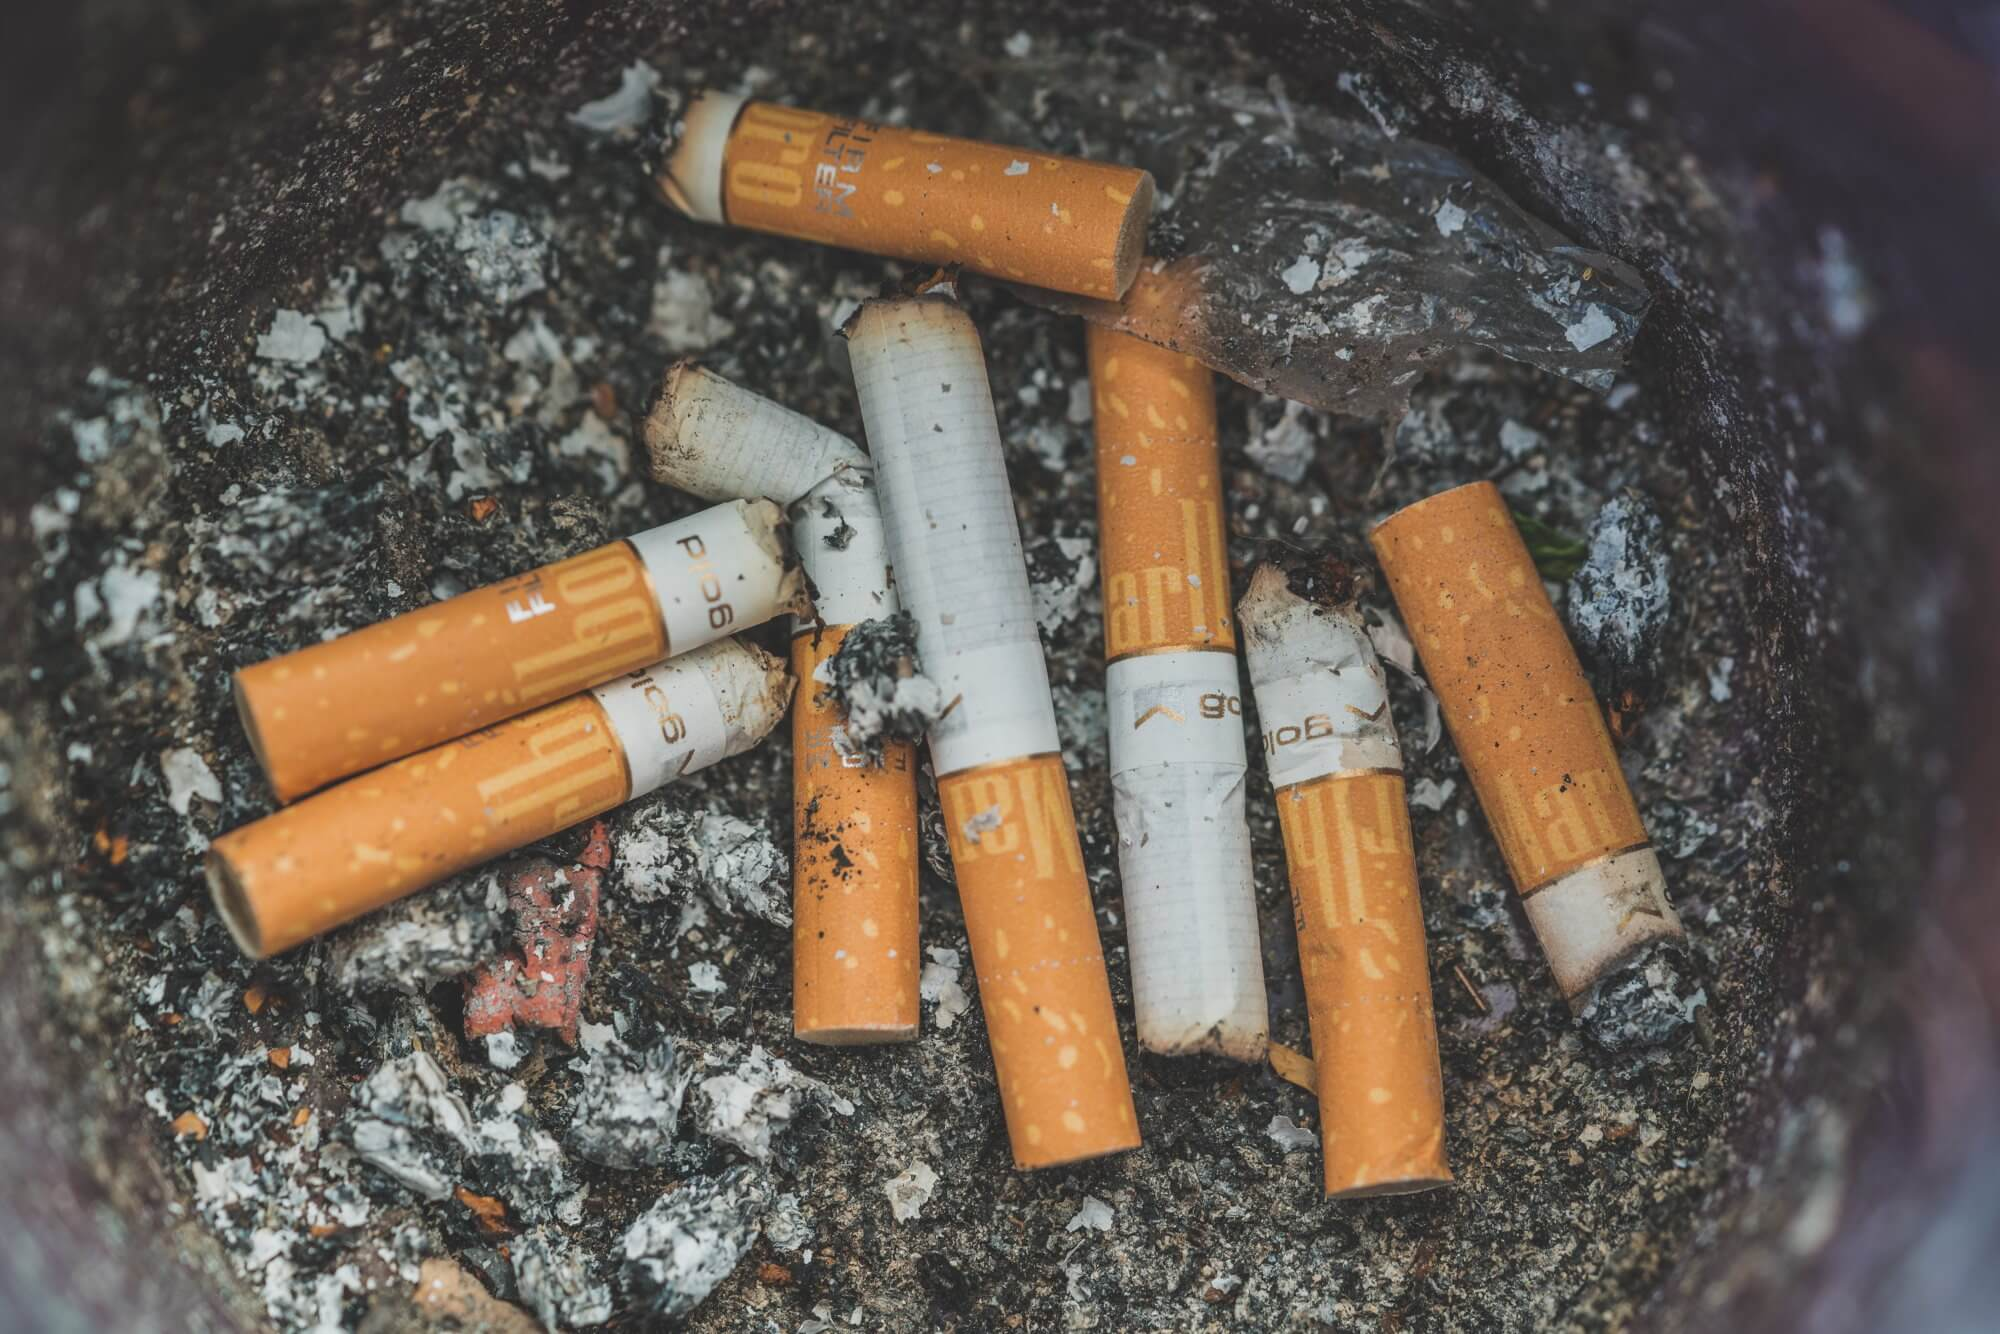 Cigarettes emit harmful substances even after extinguishing